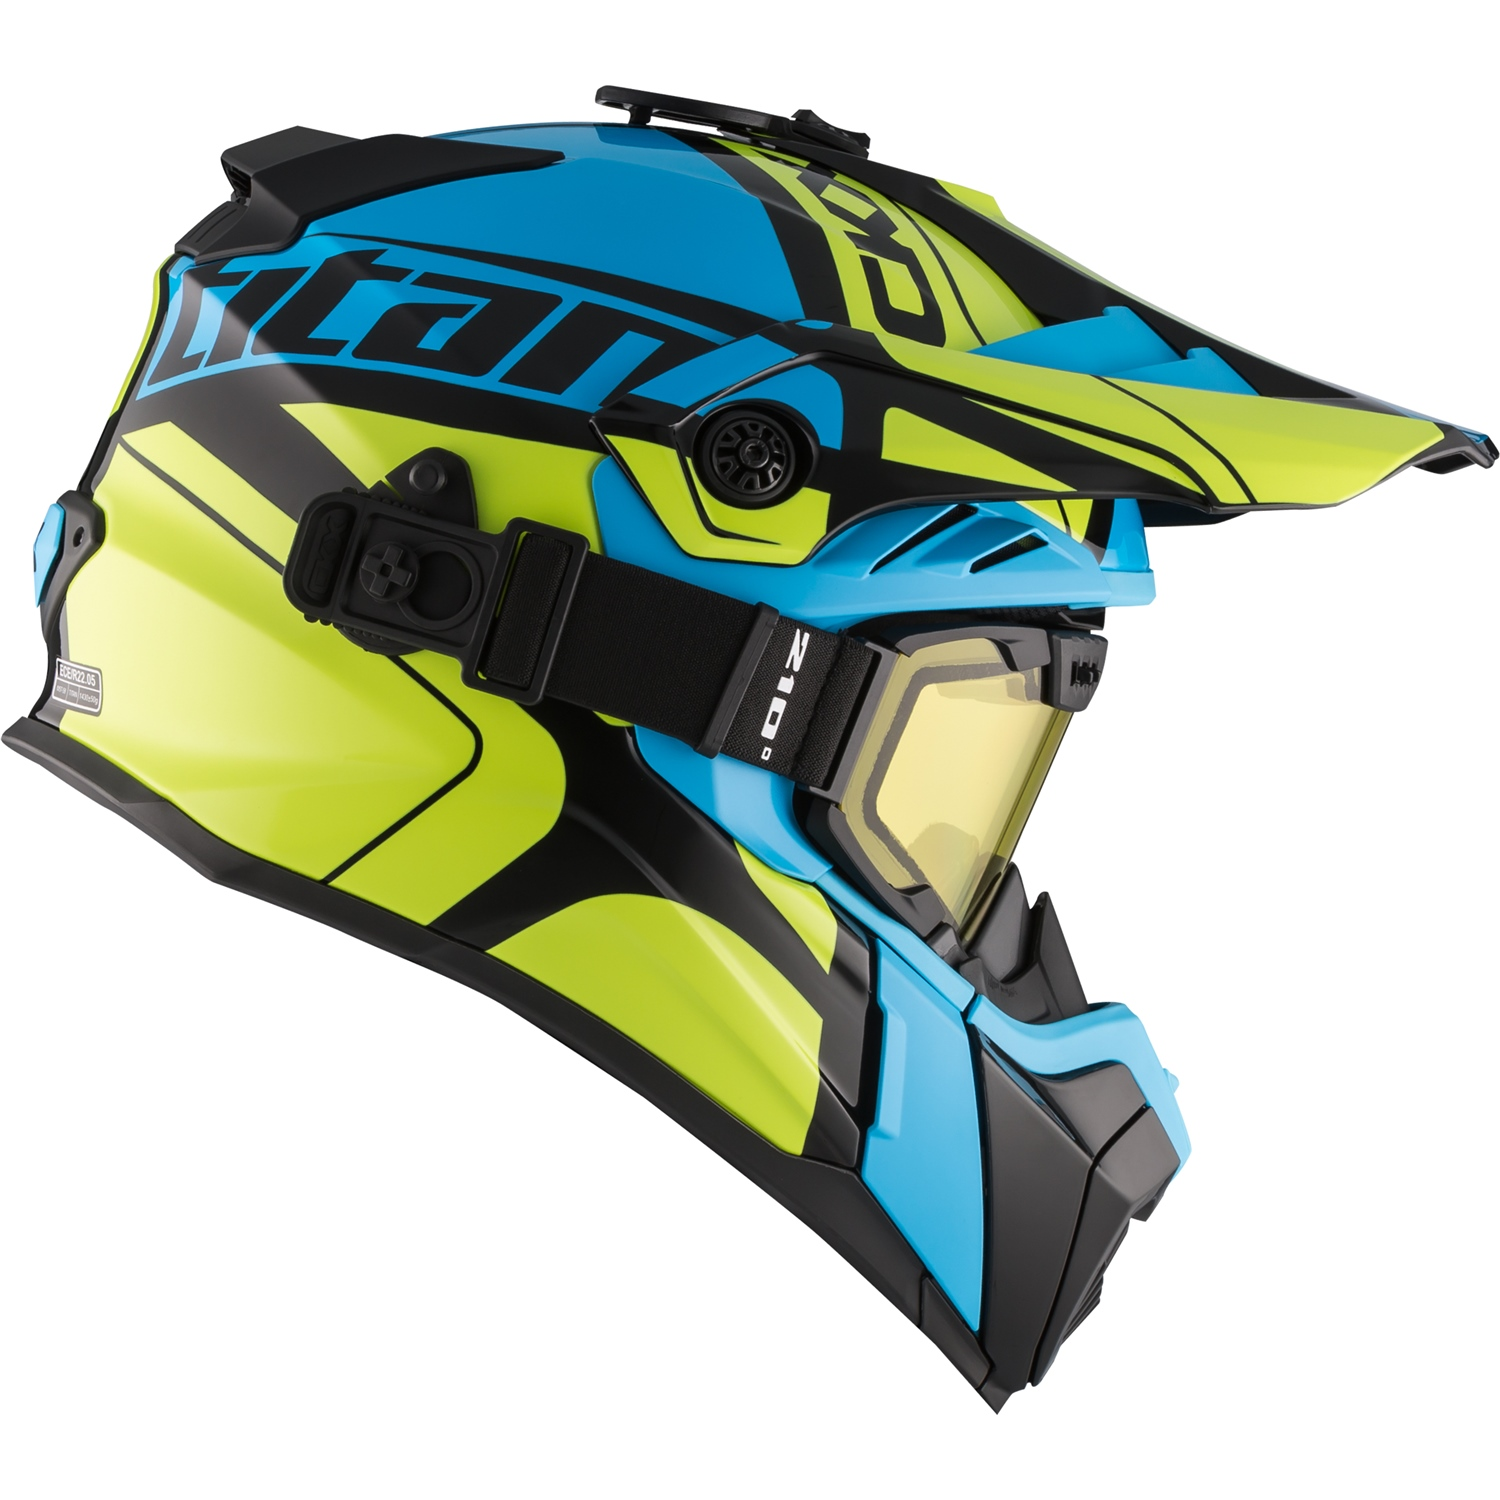 535fda1193b CKX Titan Air Flow Backcountry Helmet